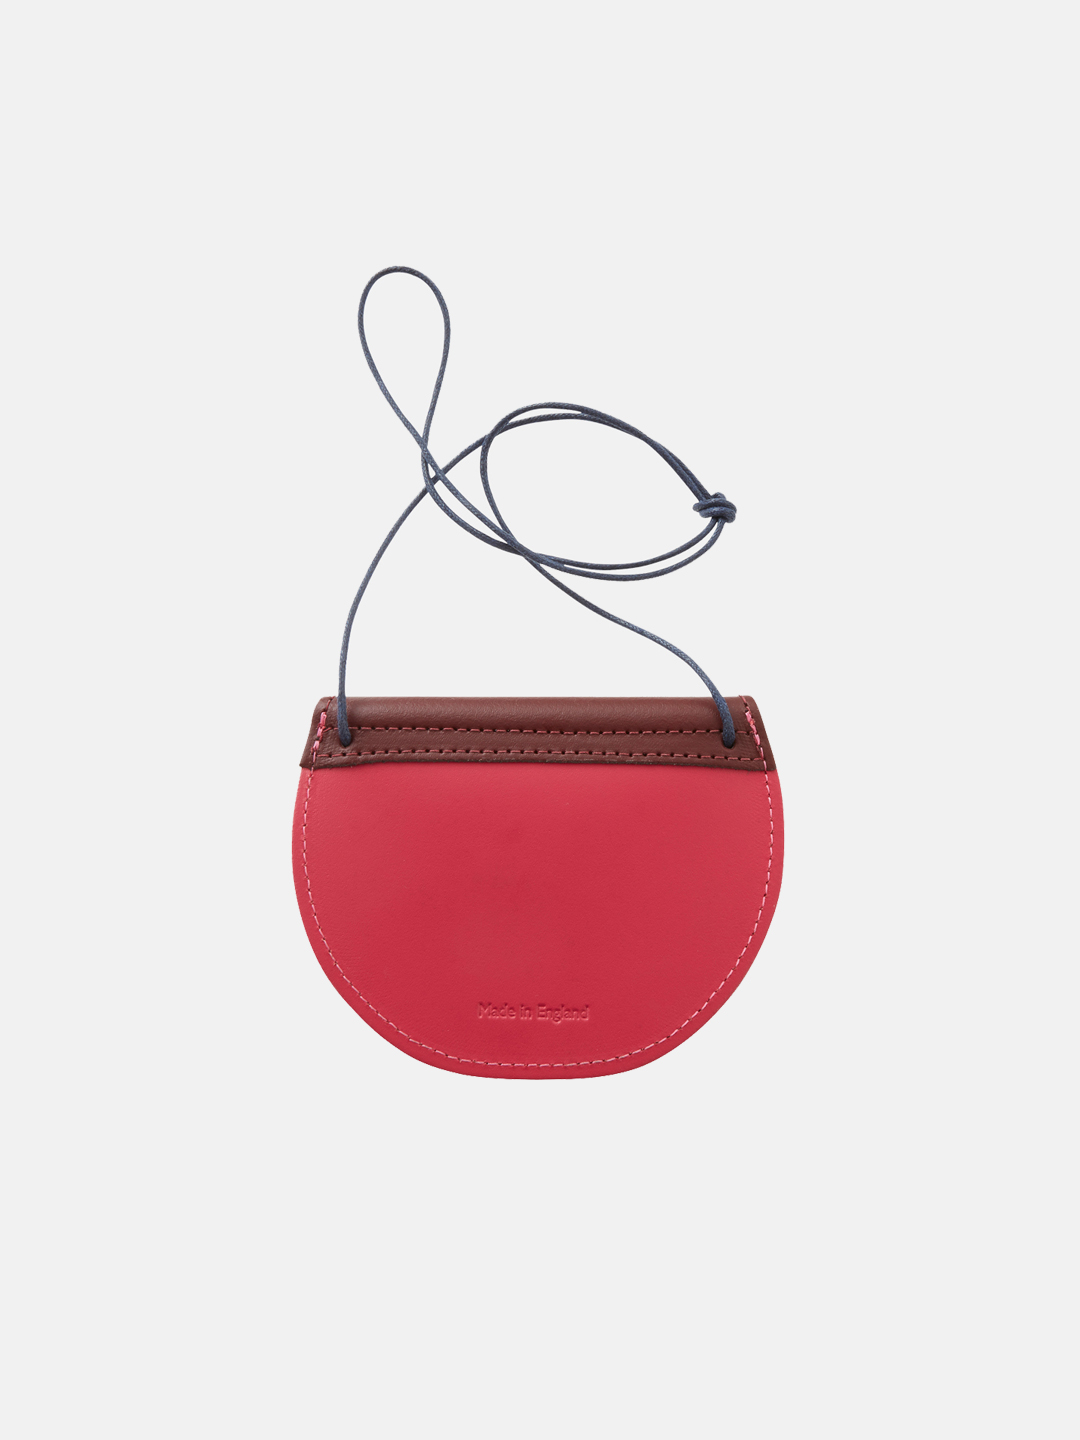 Pippin Purse - Wine Gum Red & Bright Pink